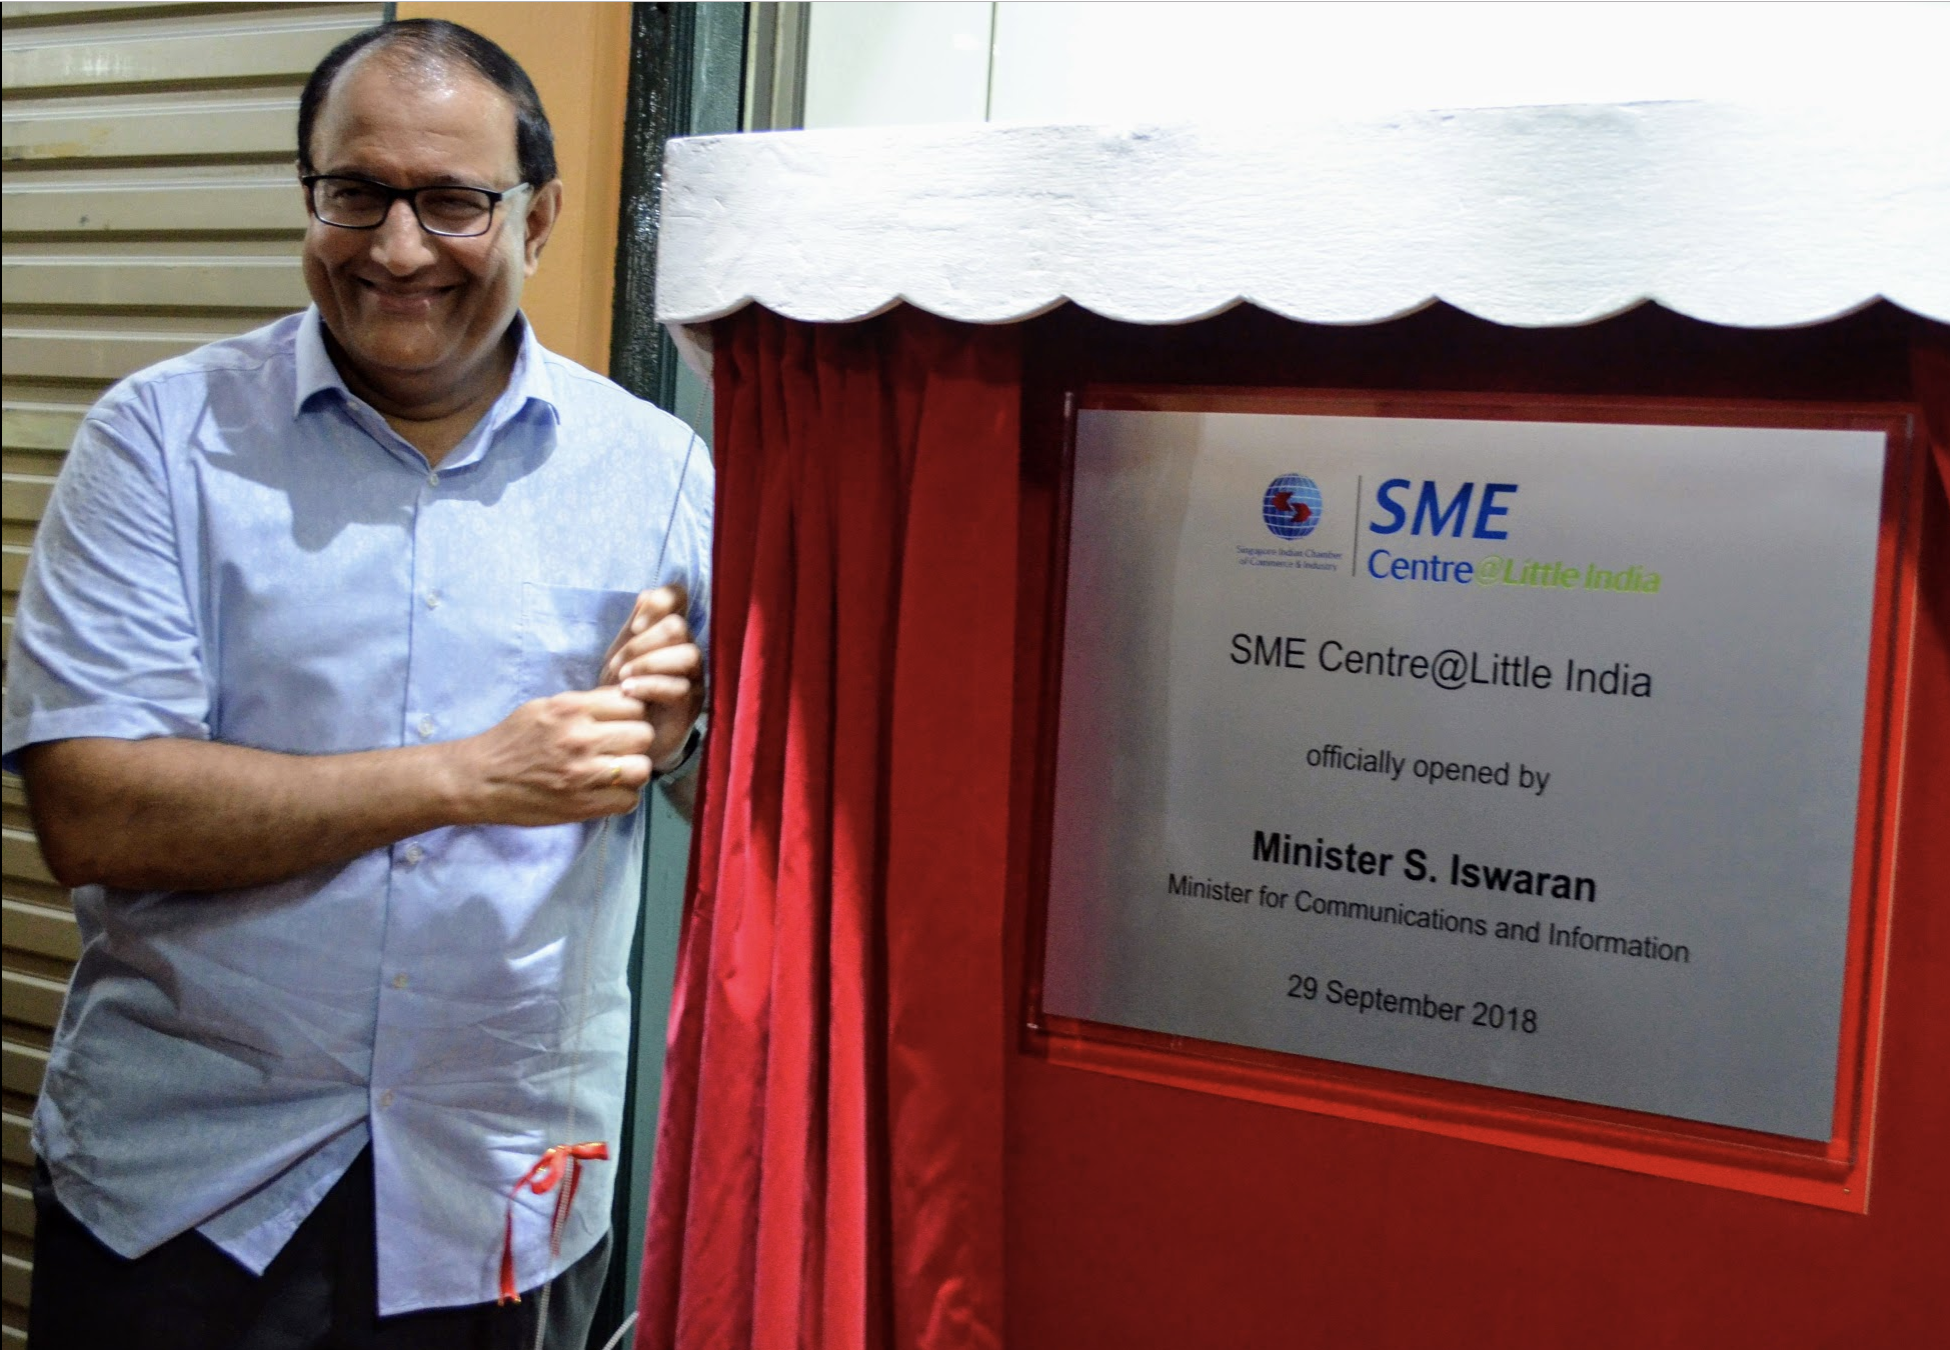 S Iswaran, Minister of Communications and Informartion unveiling the plaque at the SME Centre in Little India arcade Photo: Connected to India